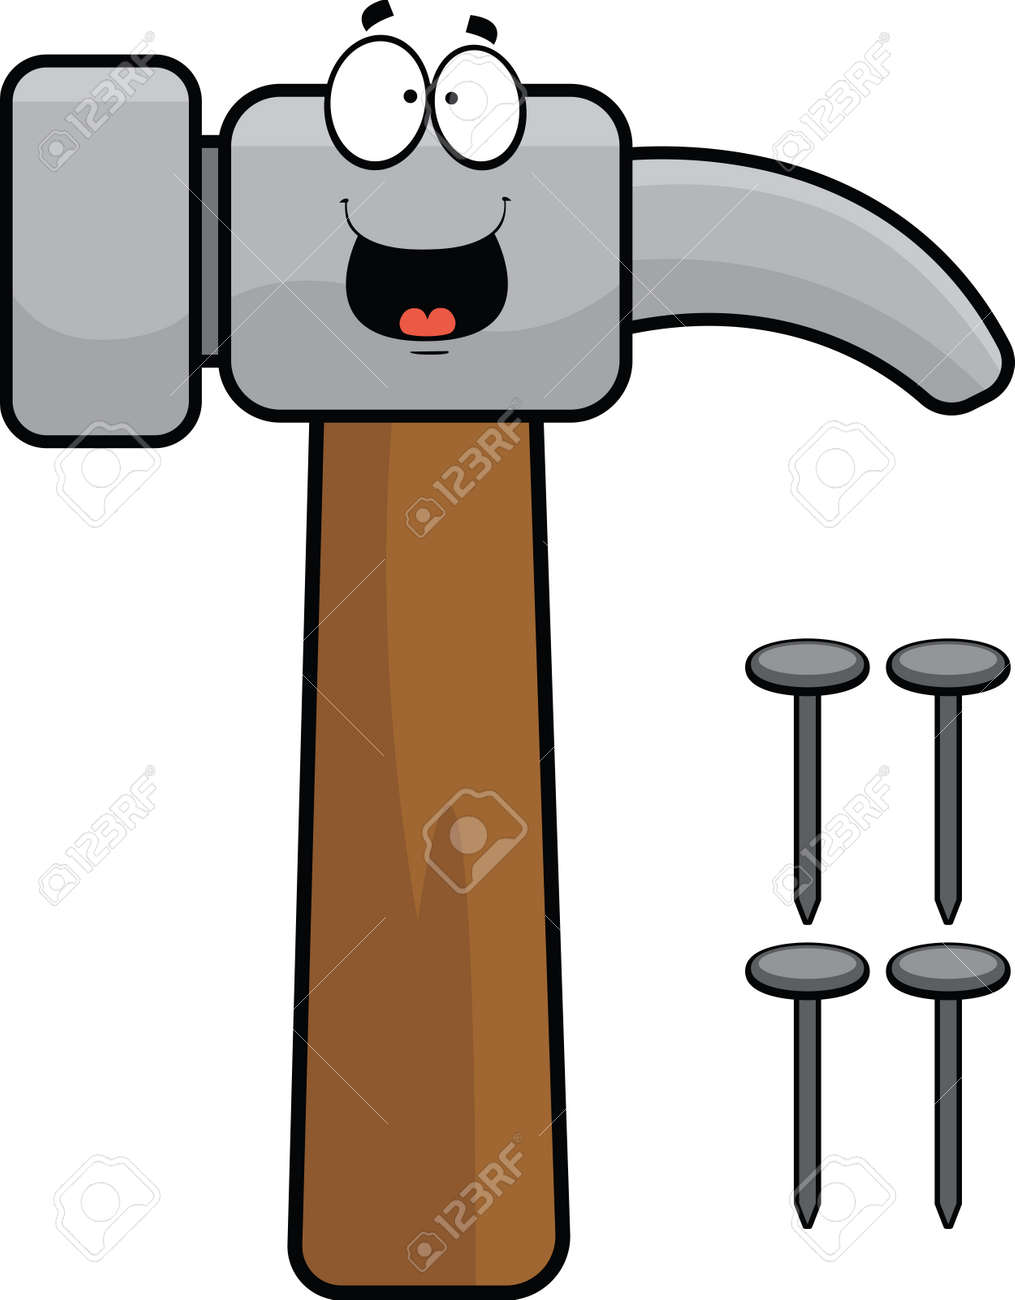 Cartoon illustration of a hammer and nails with a happy expression